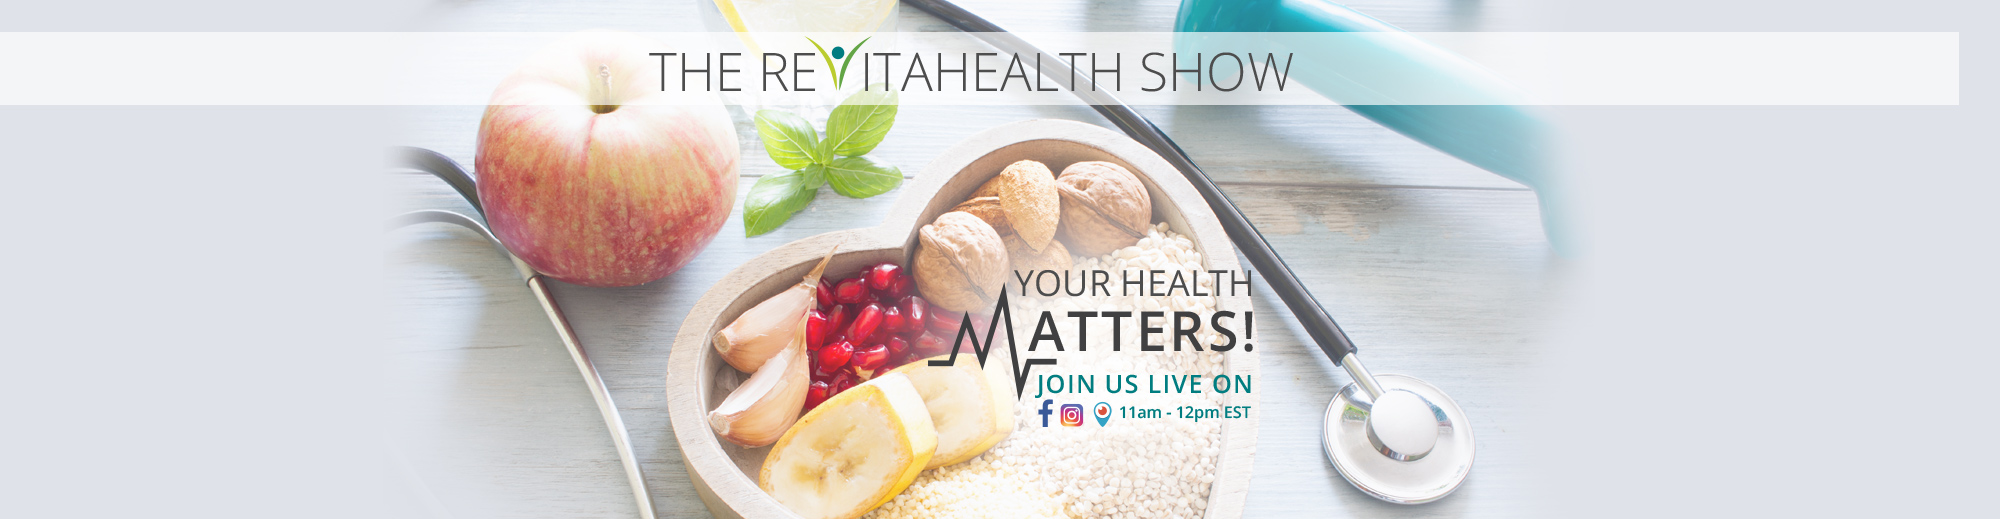 The Revitahealth Show